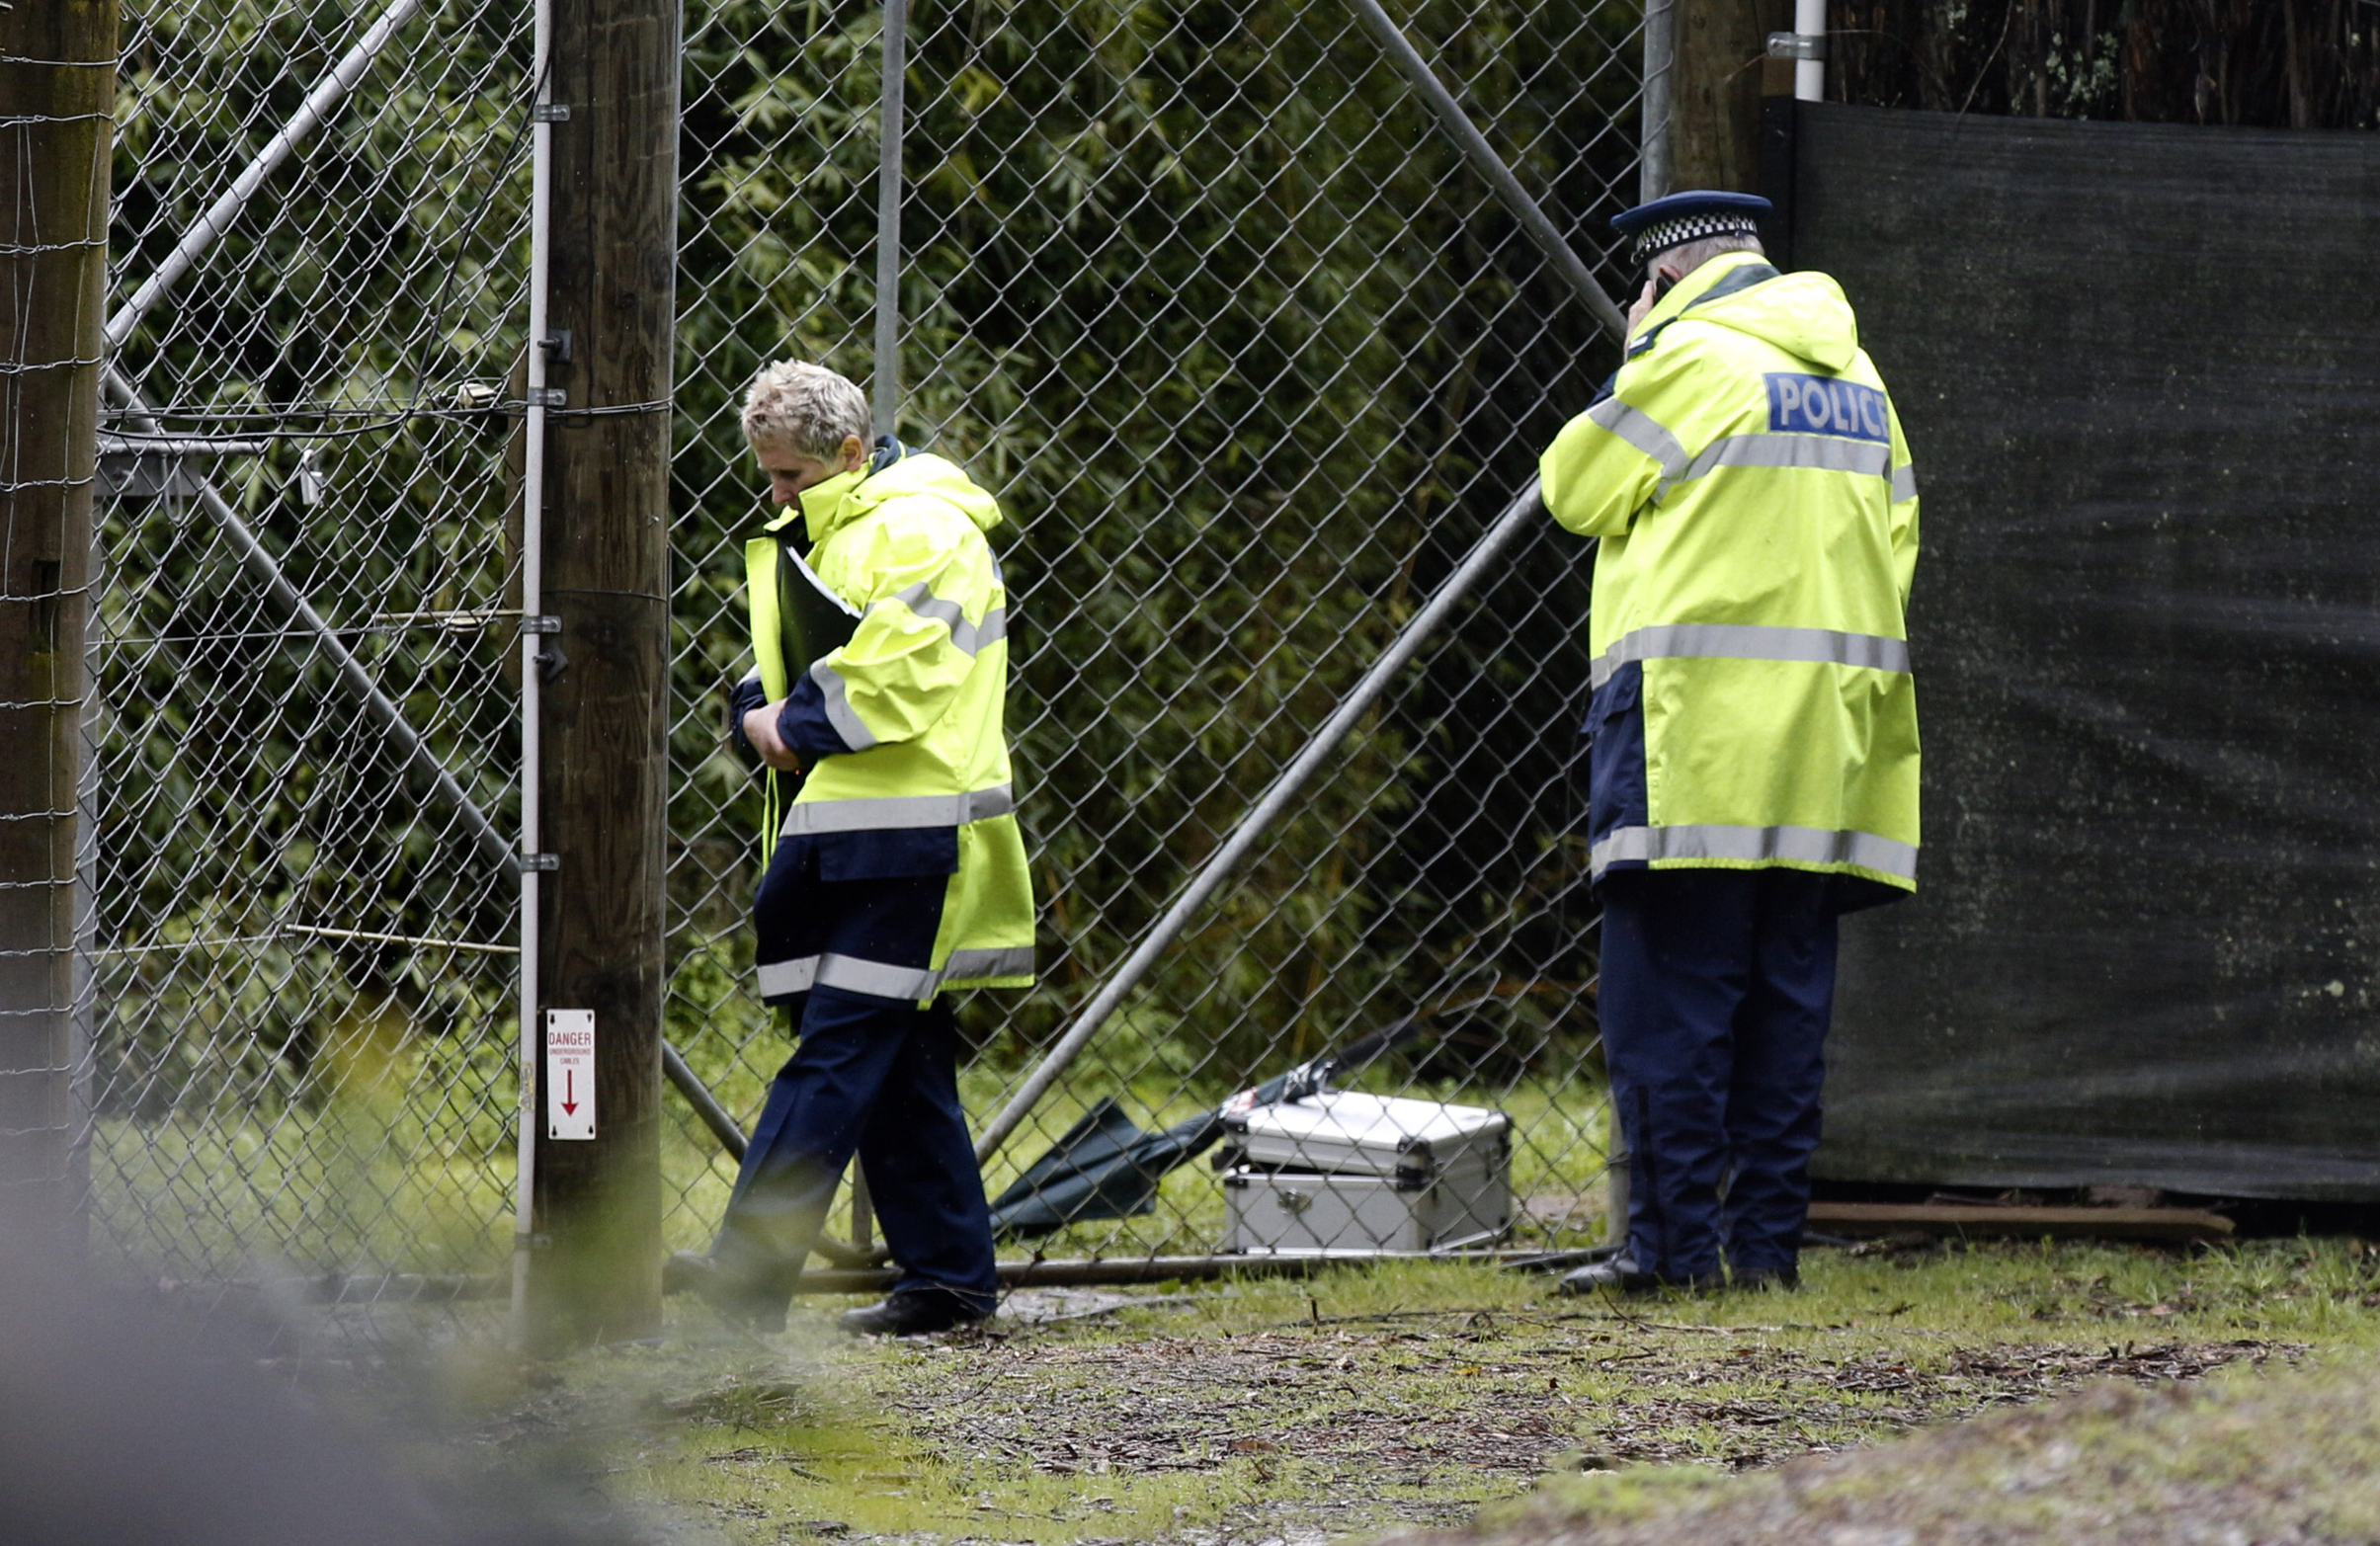 Police stand at the shut gates at Hamilton Zoo after a female zookeeper was killed by one of the tigers at the zoo in Hamilton, New Zealand, on Sept. 20, 2015